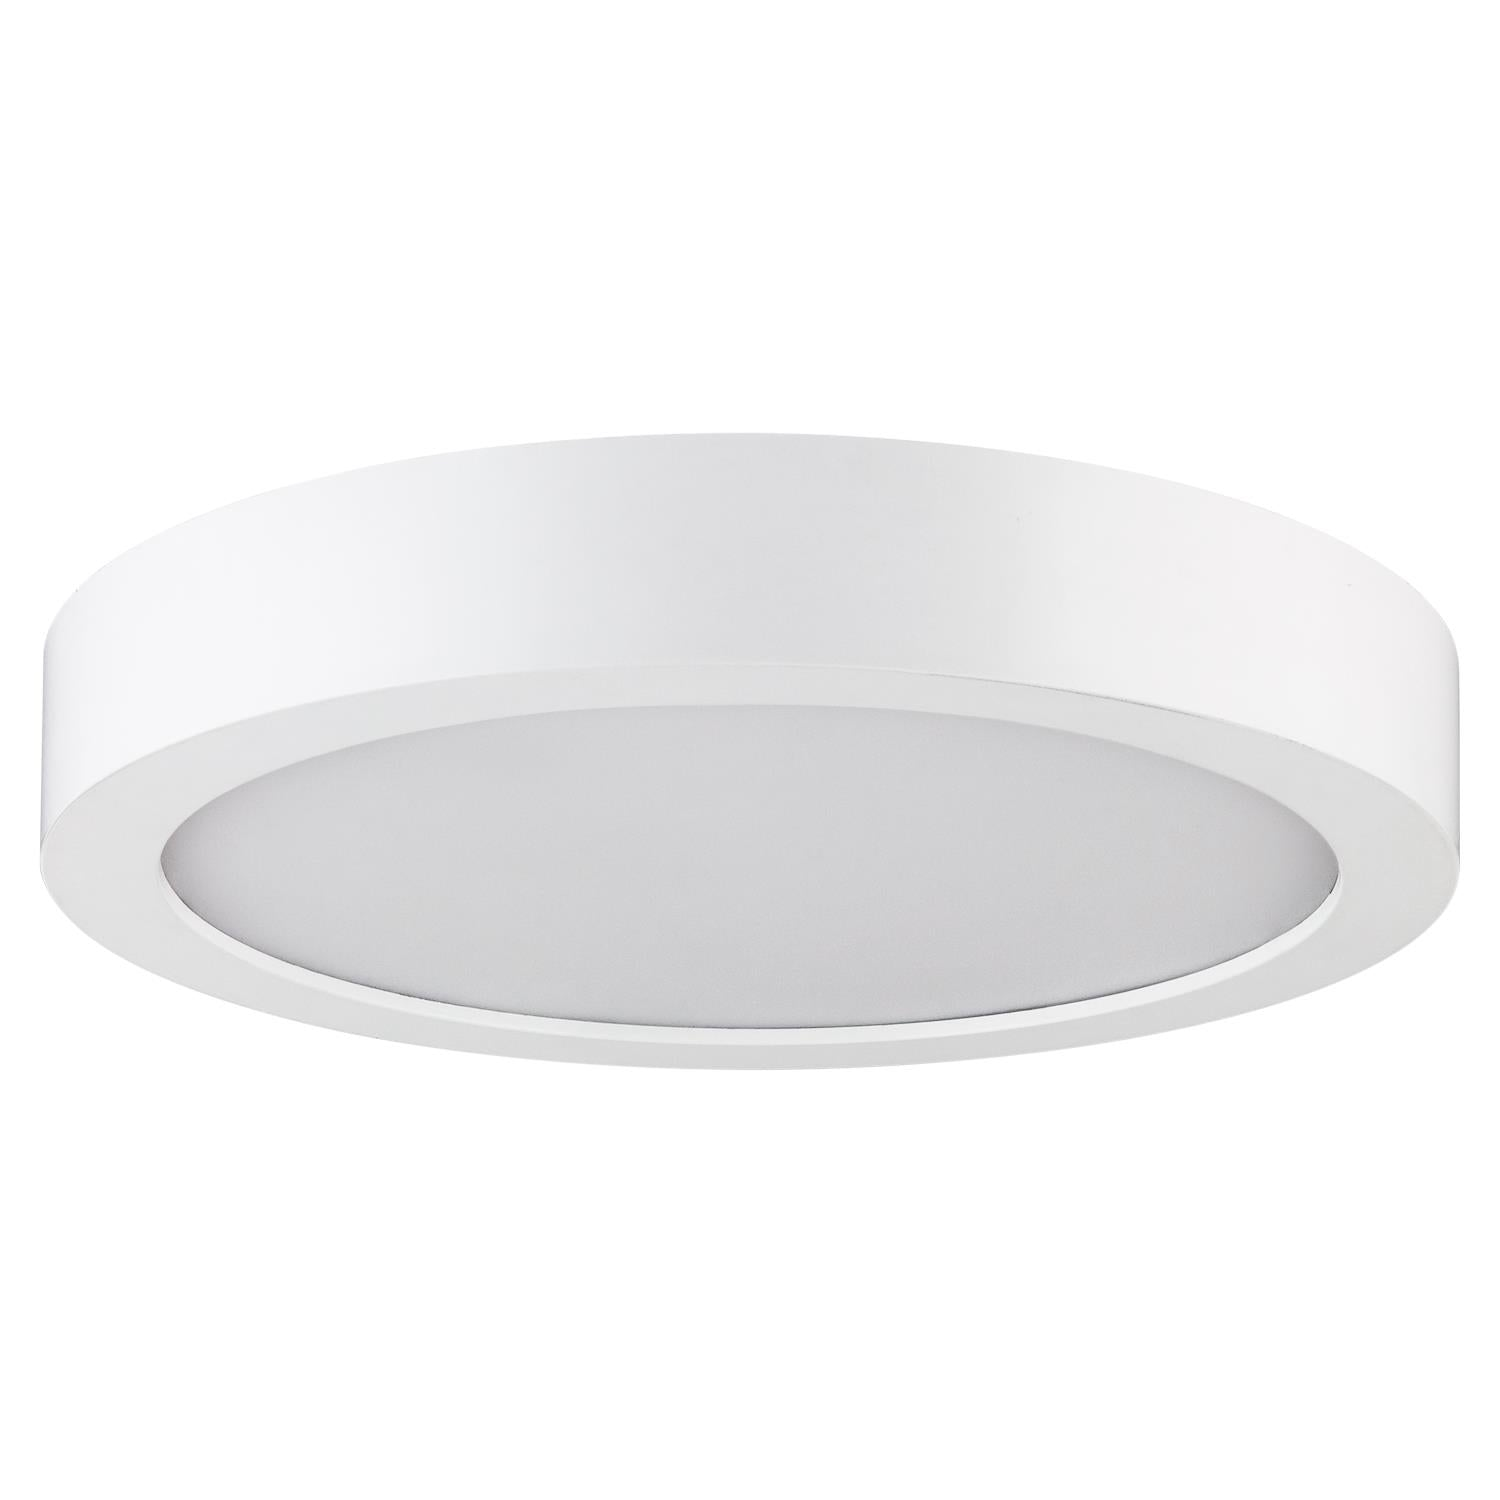 SUNLITE 11W 5.5in. LED Round Mini Panel Ceiling Light 3000K Warm White